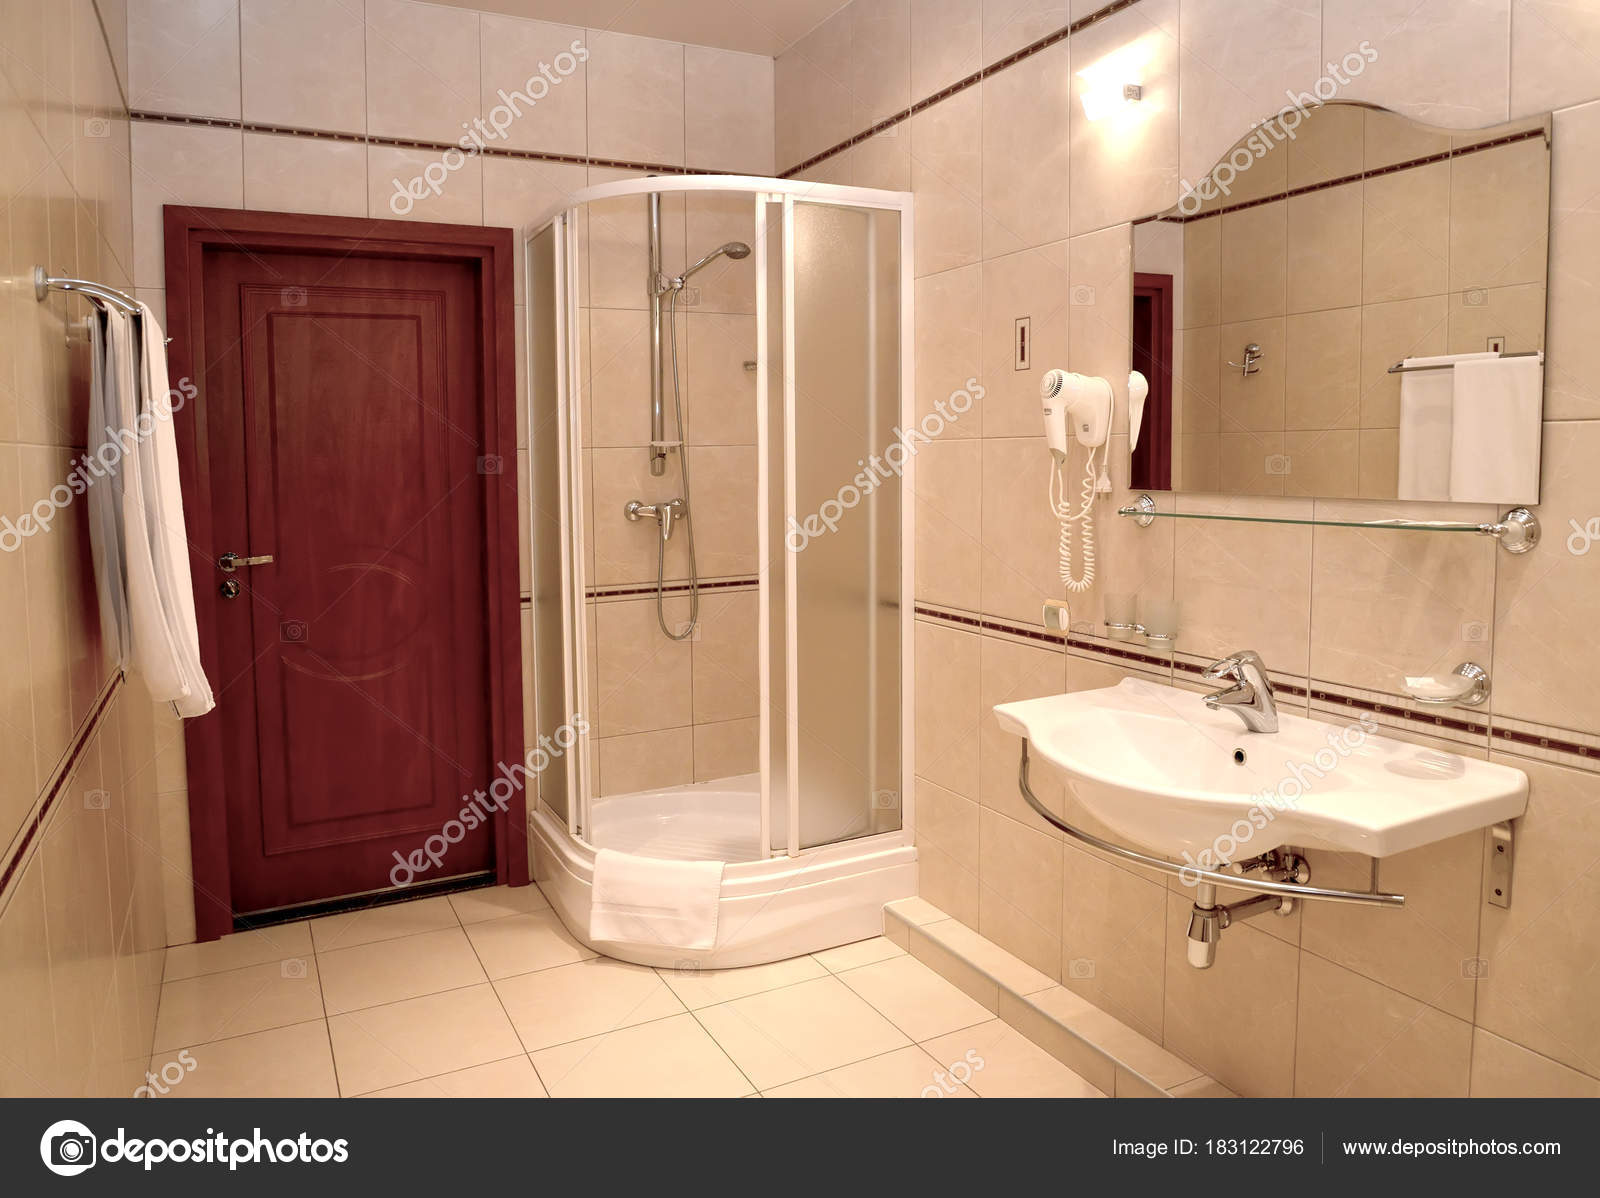 Bathroom with a shower booth and a sink in beige tones — Stock Photo on vintage booth designs, wedding booth designs, restaurant booth designs, water booth designs, phone booth designs, school booth designs,